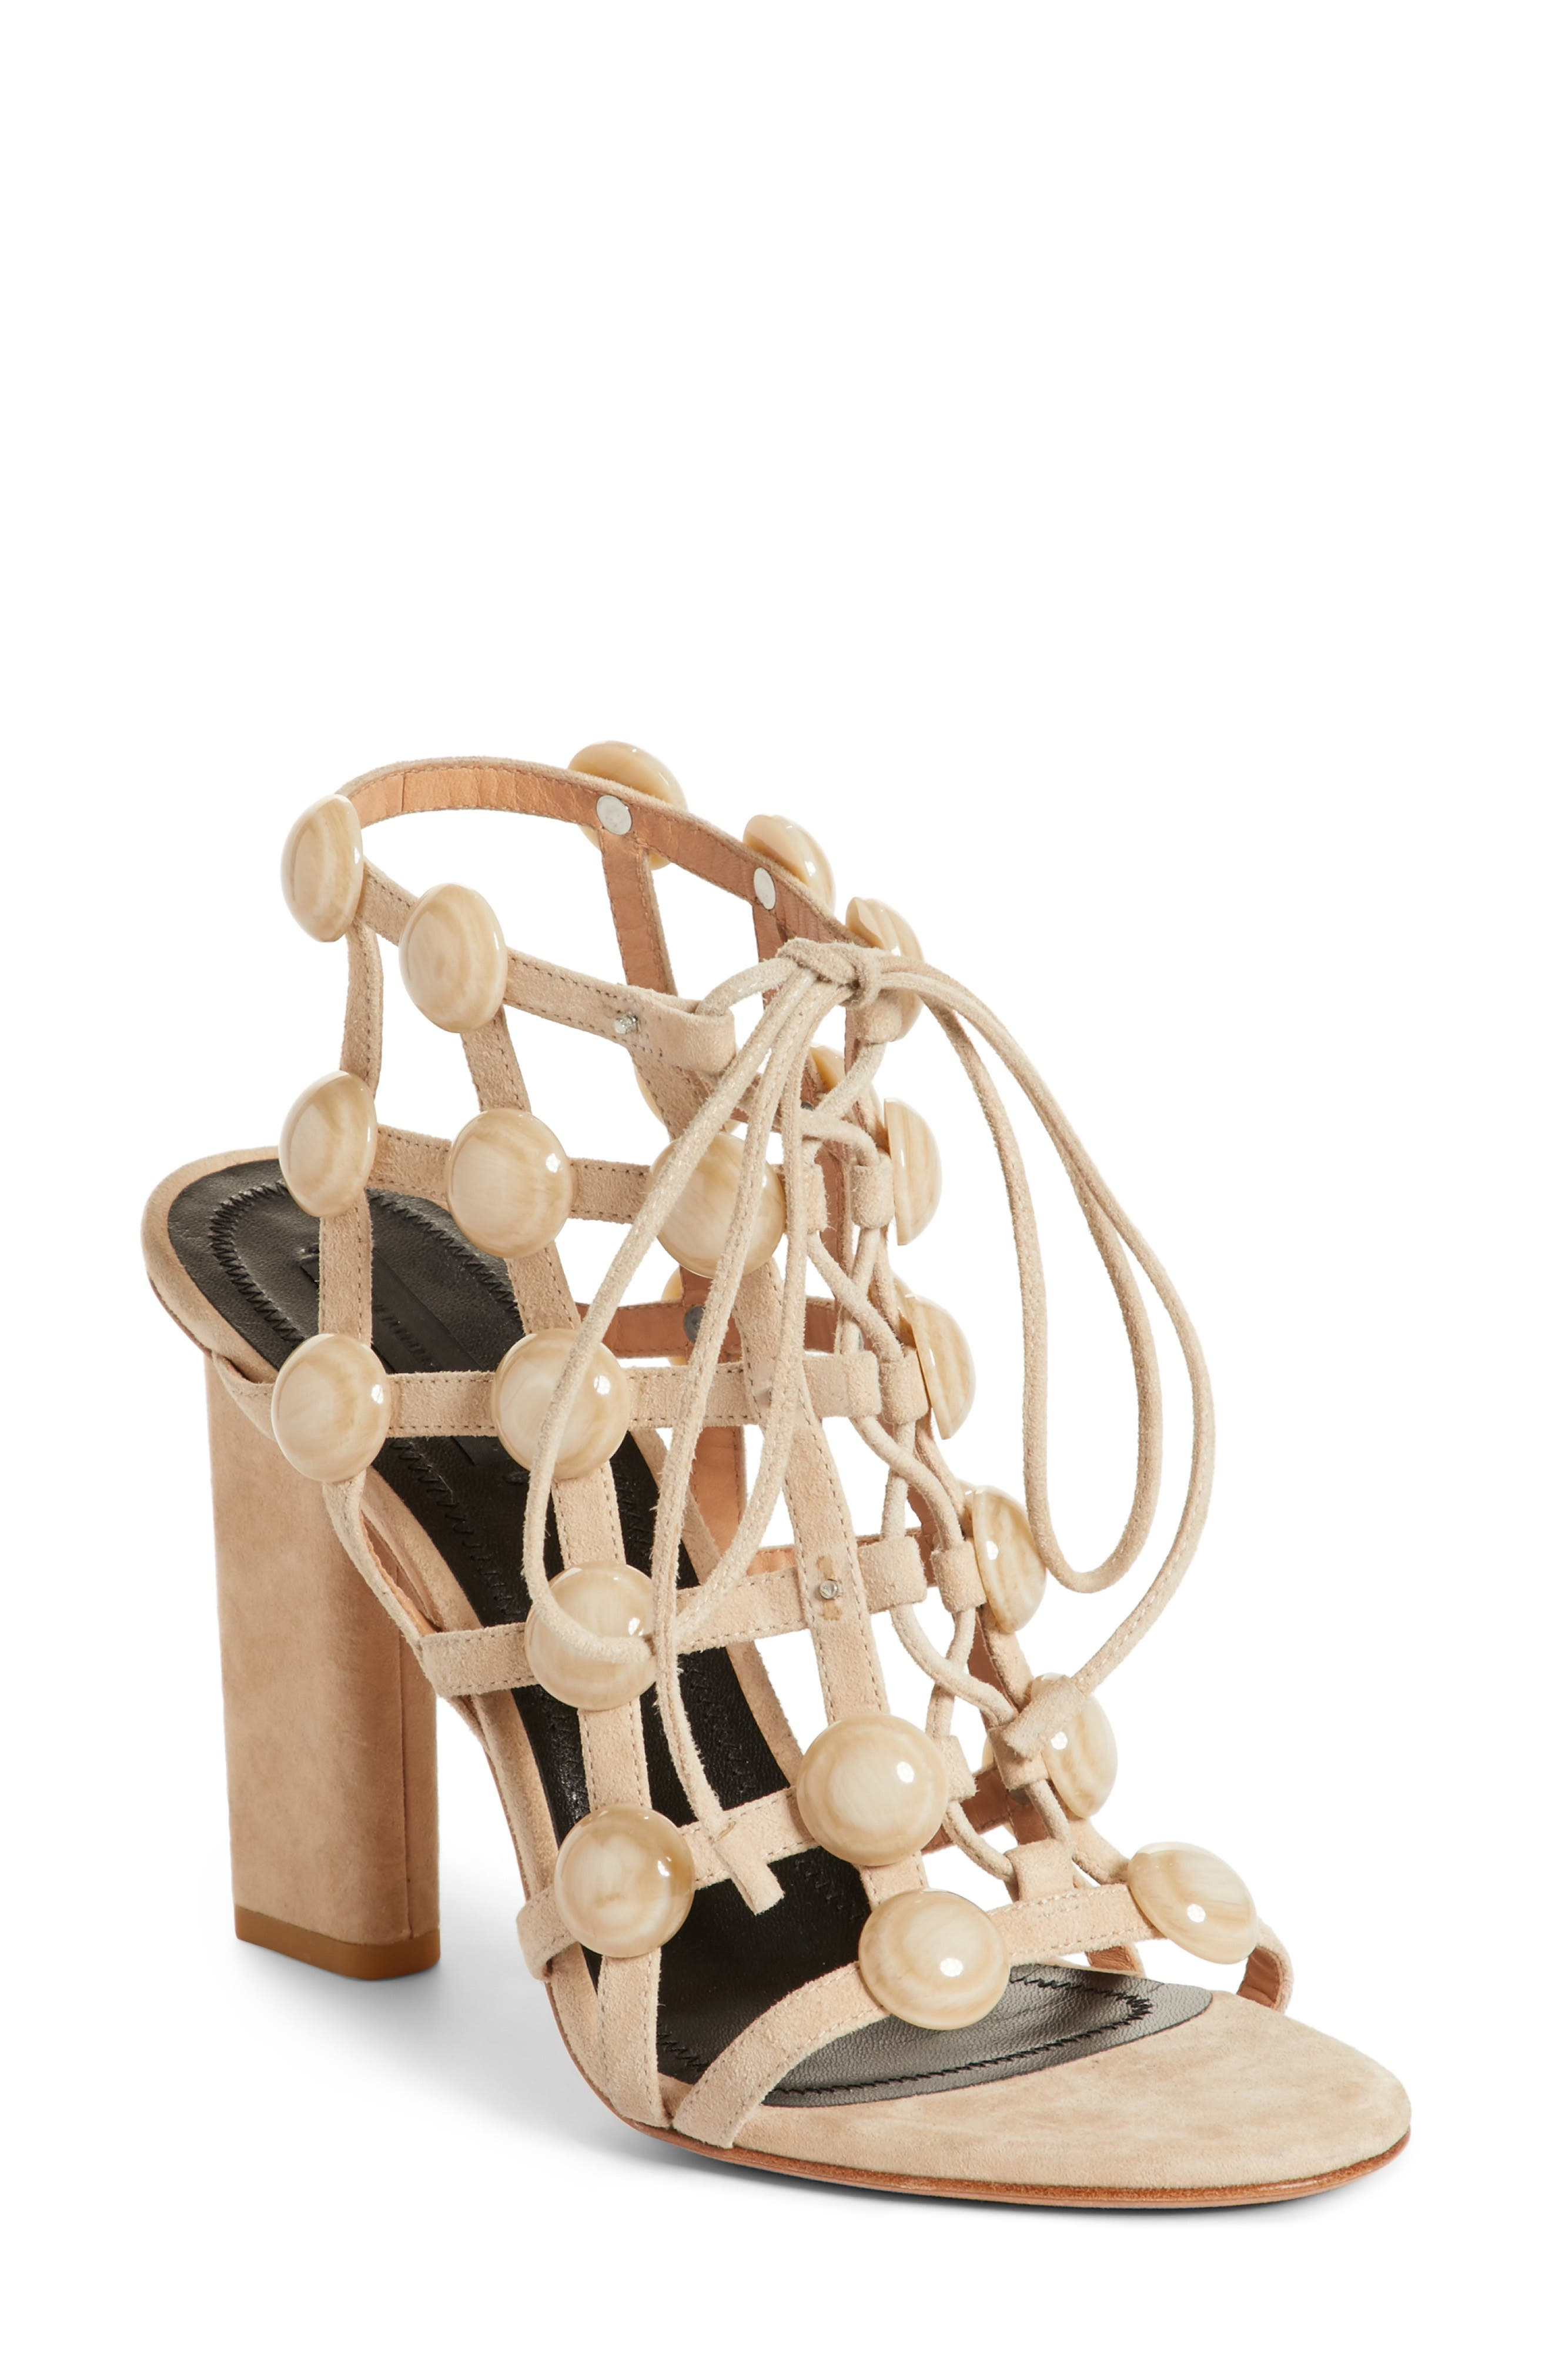 Rubie Studded Sandal,                         Main,                         color, Cashmere